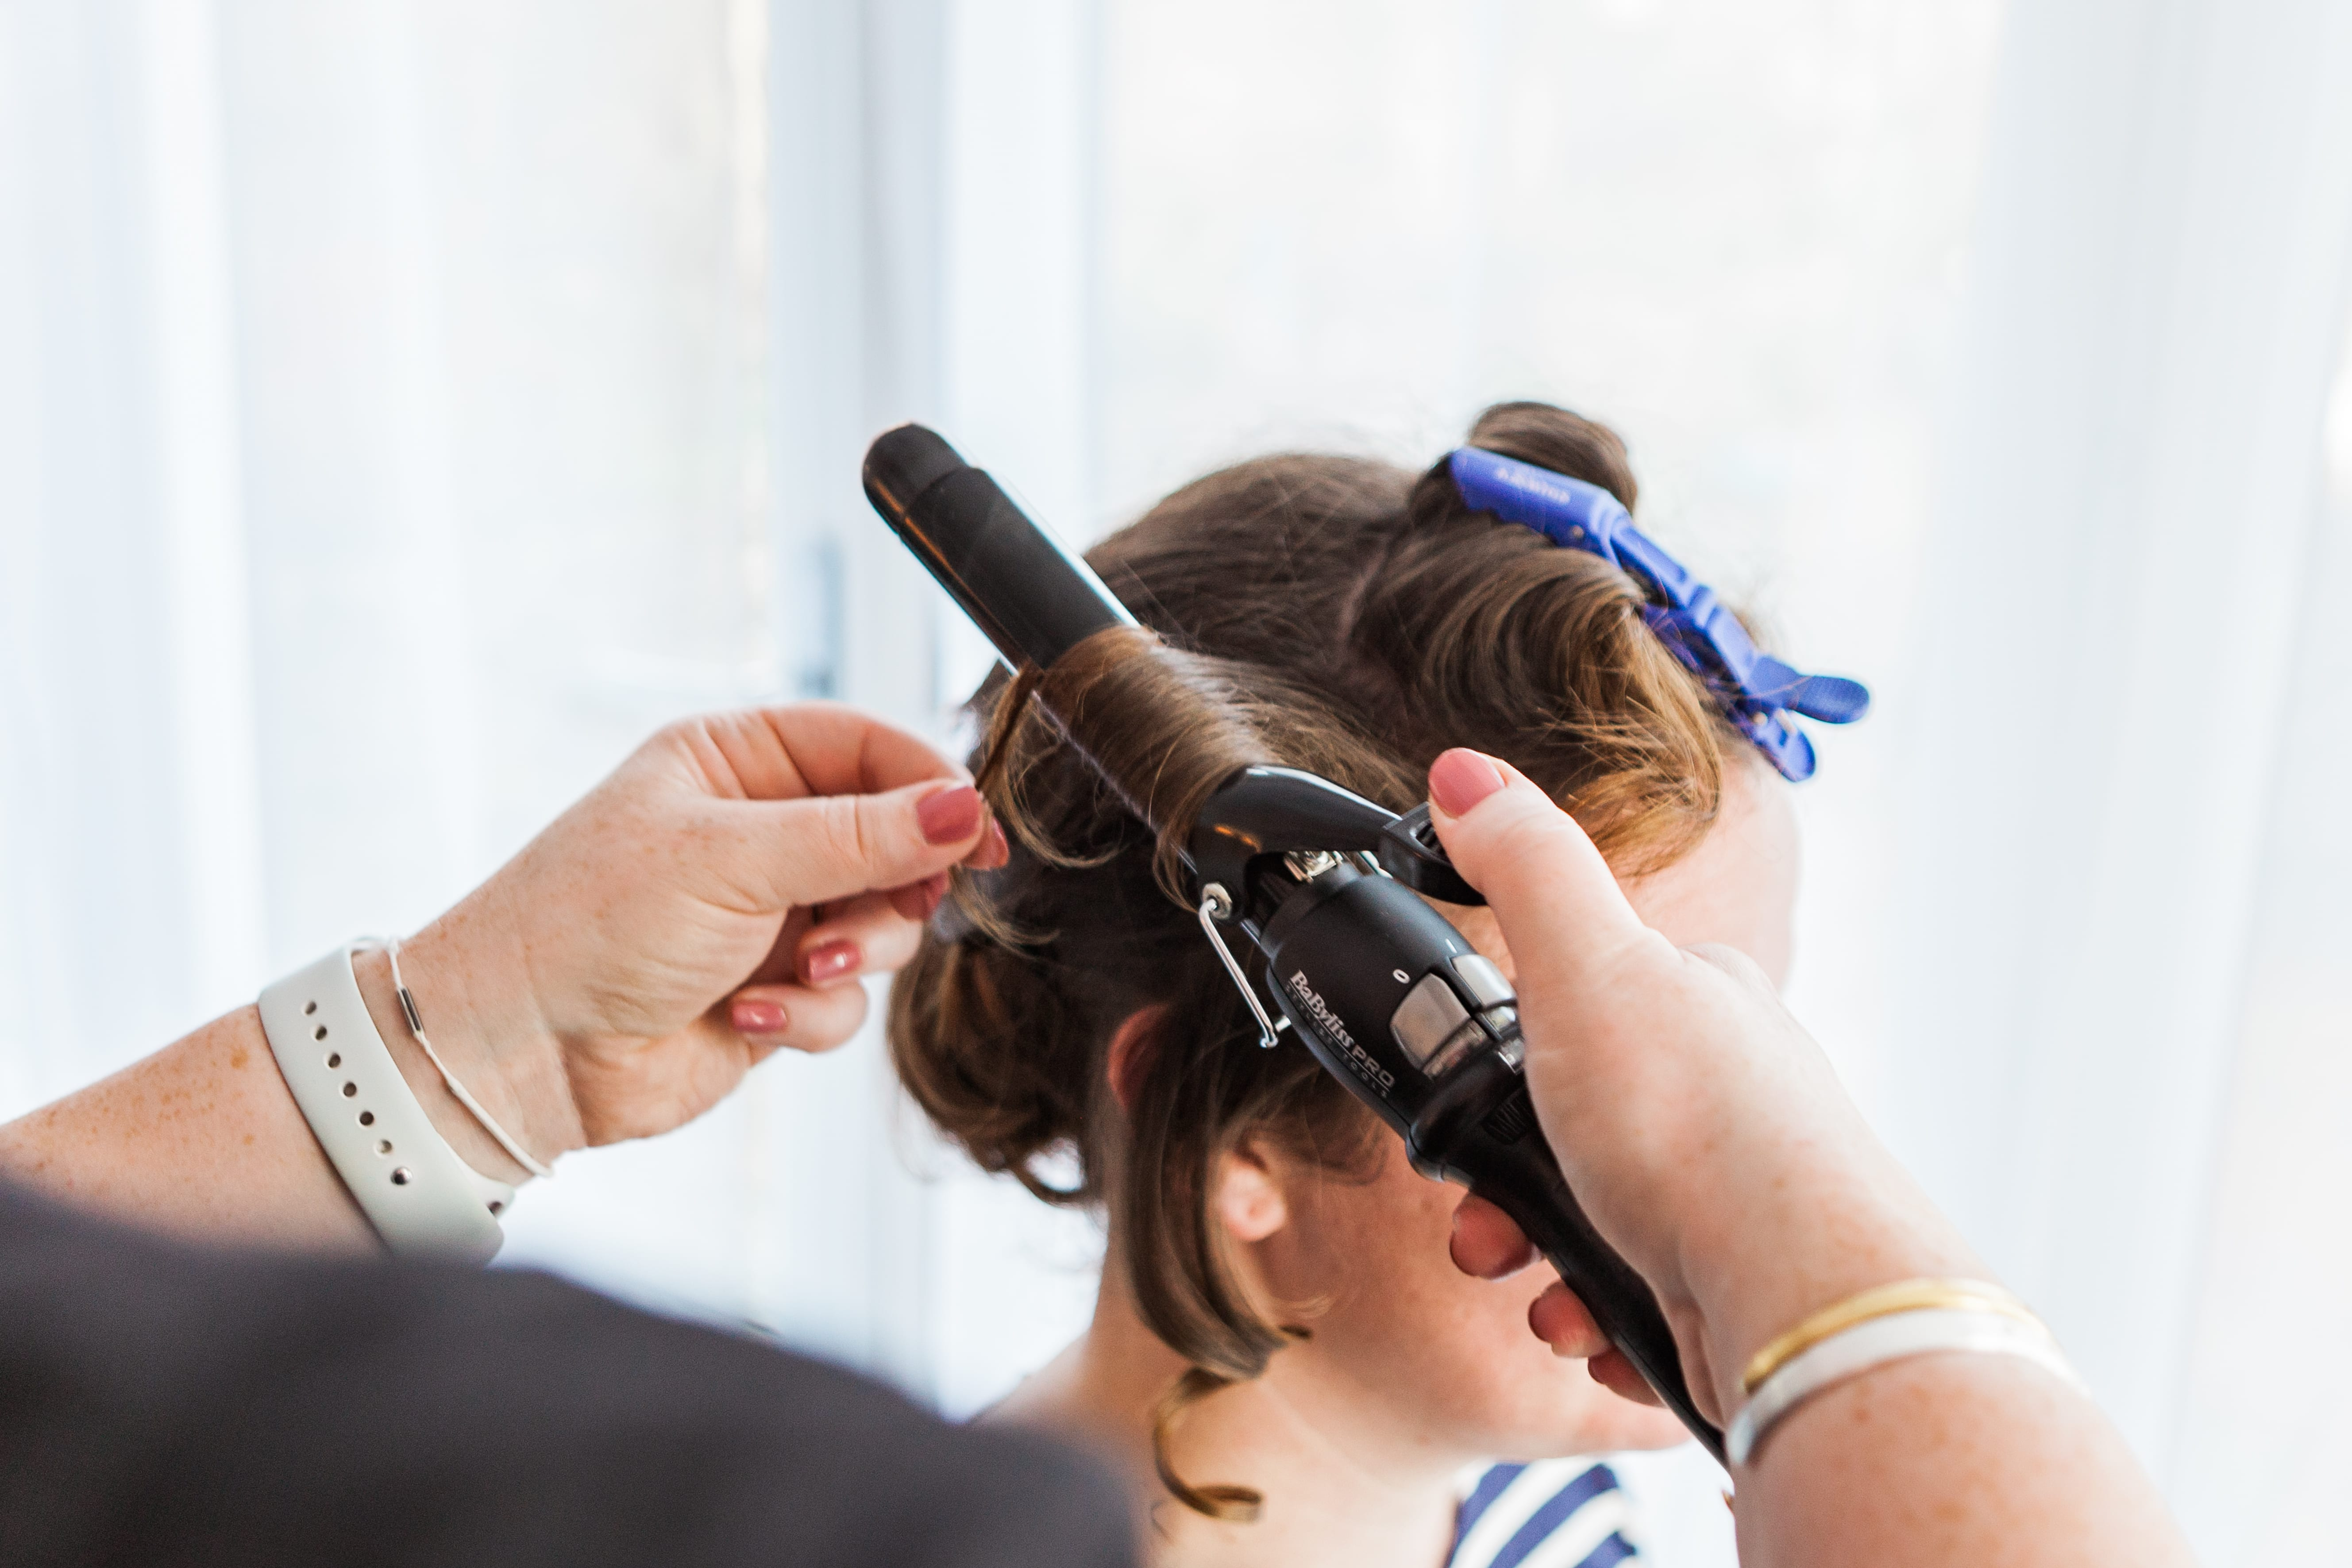 Should I have hair or makeup done first on my wedding morning? Wedding Hair and Makeup in Oxfordshire